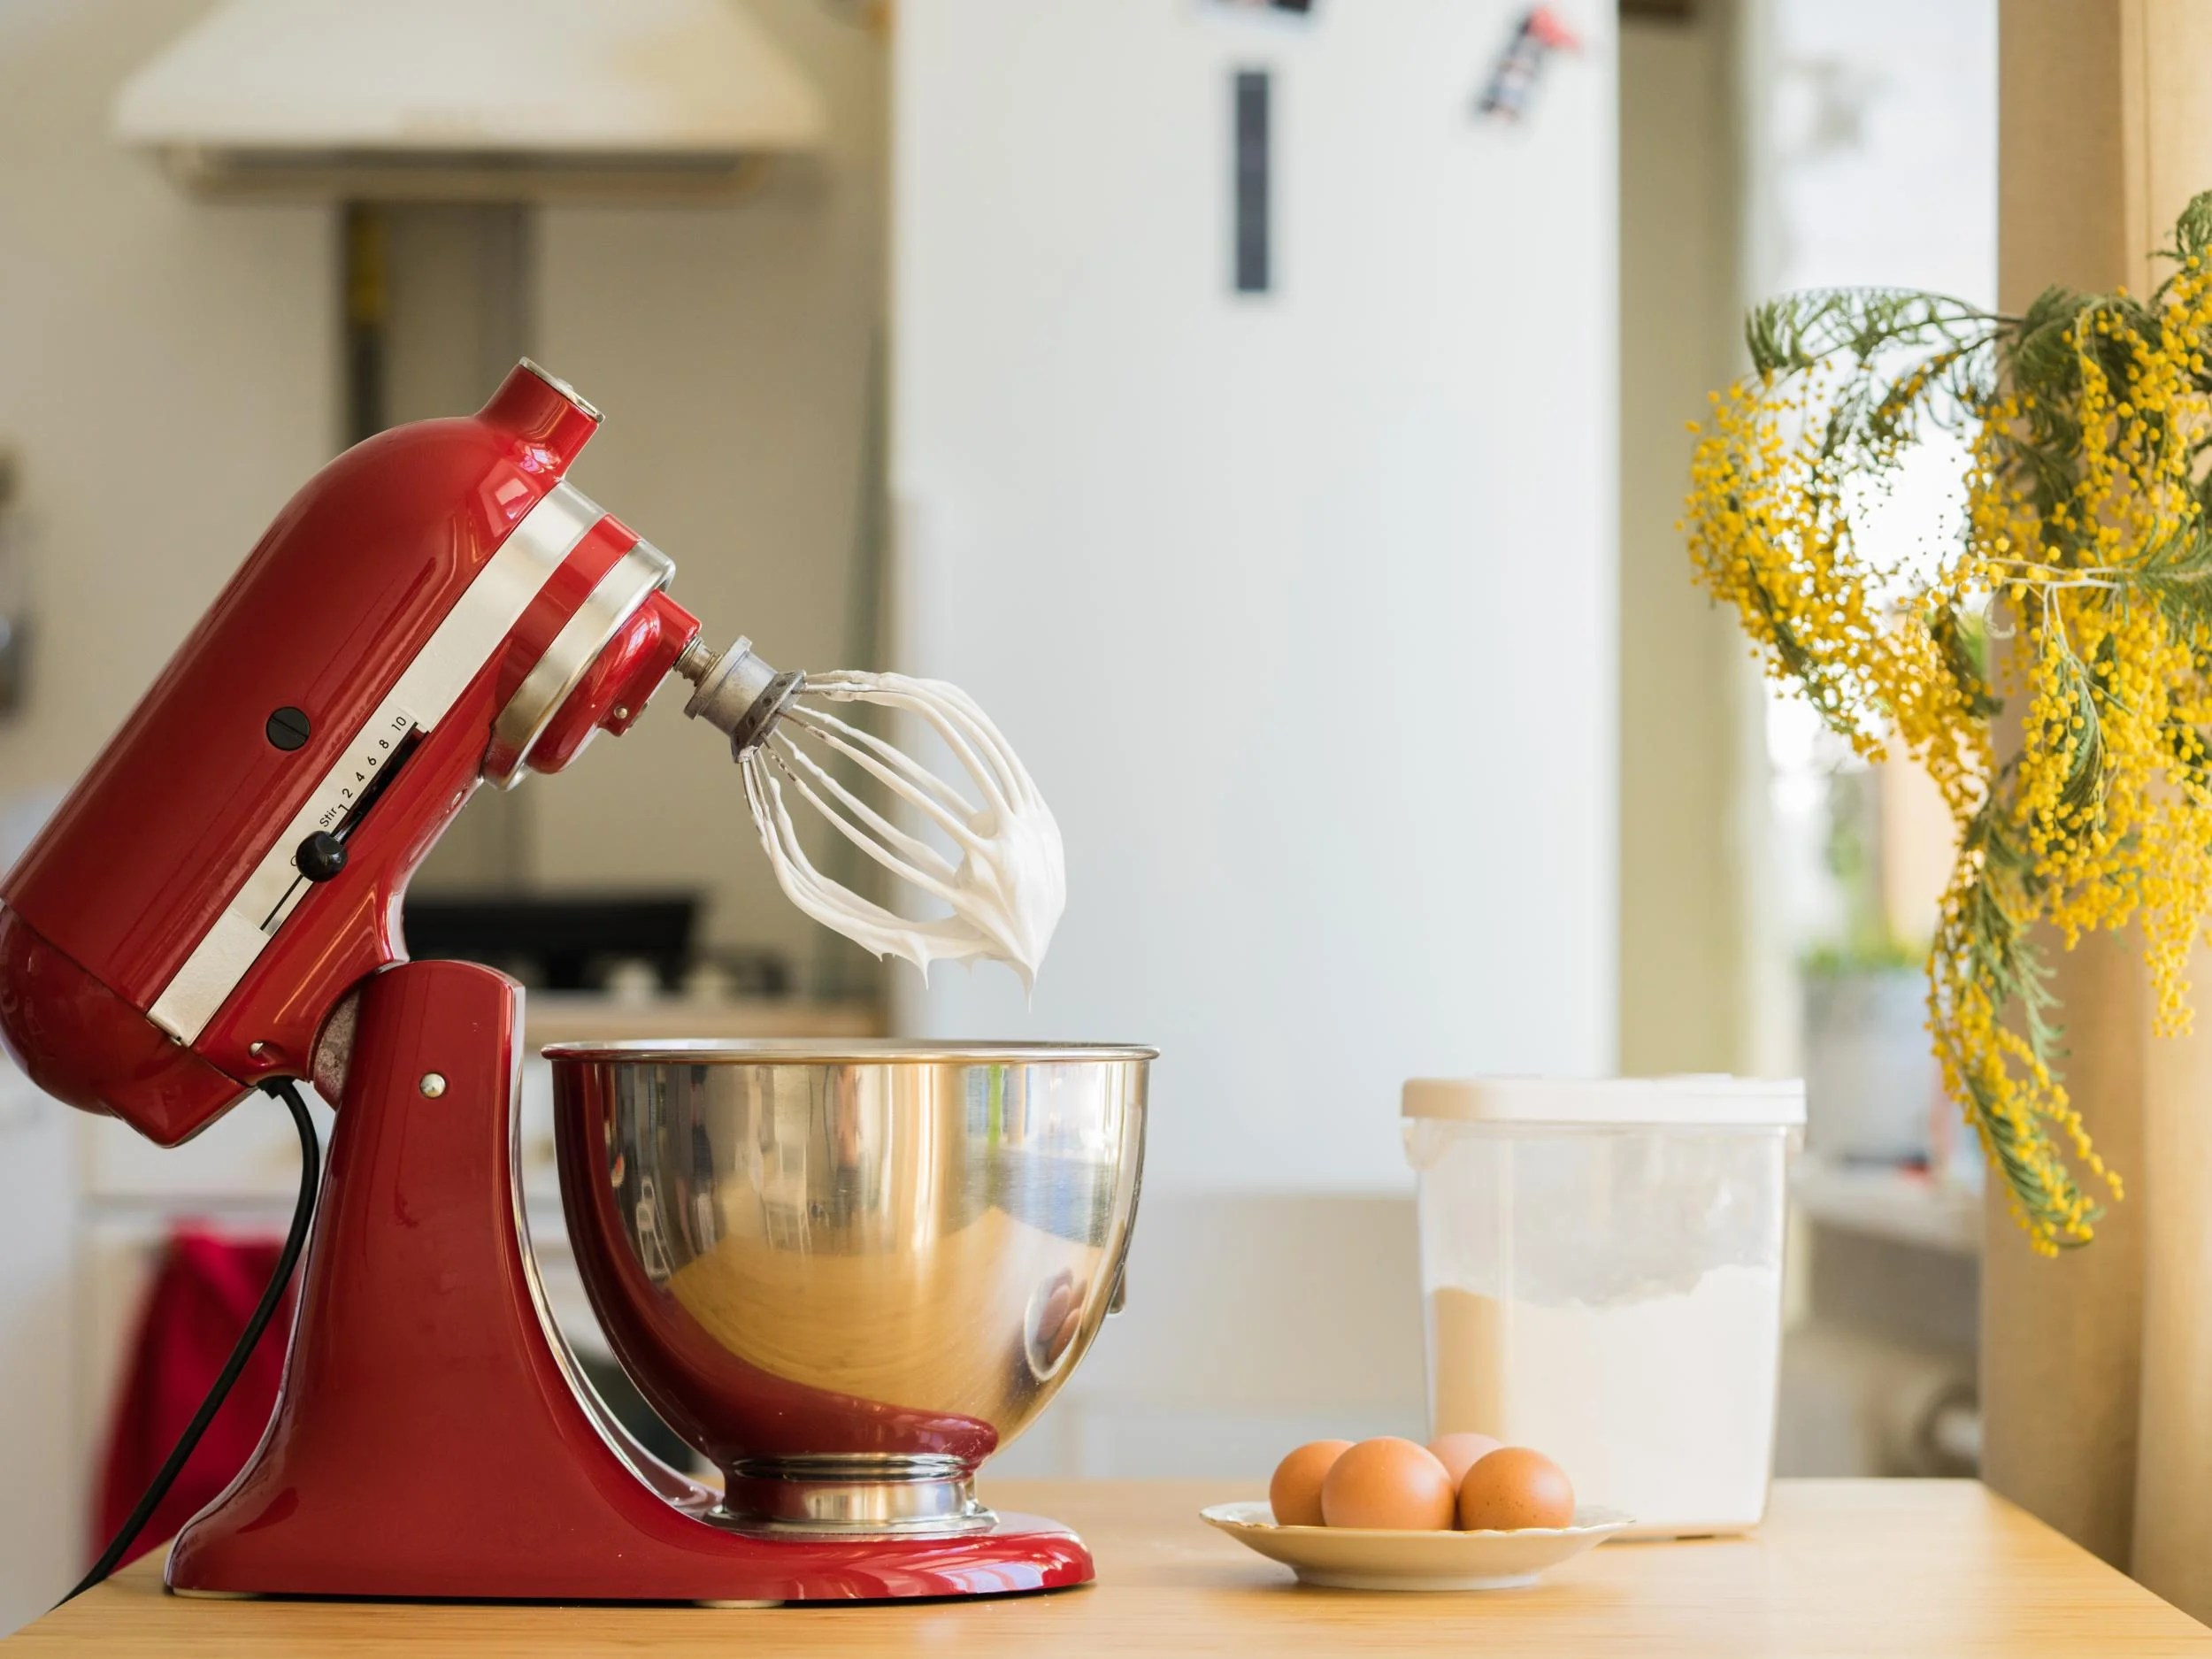 kitchen mixers quality brand cabinets 8 best the independent take toll out of baking with these buys